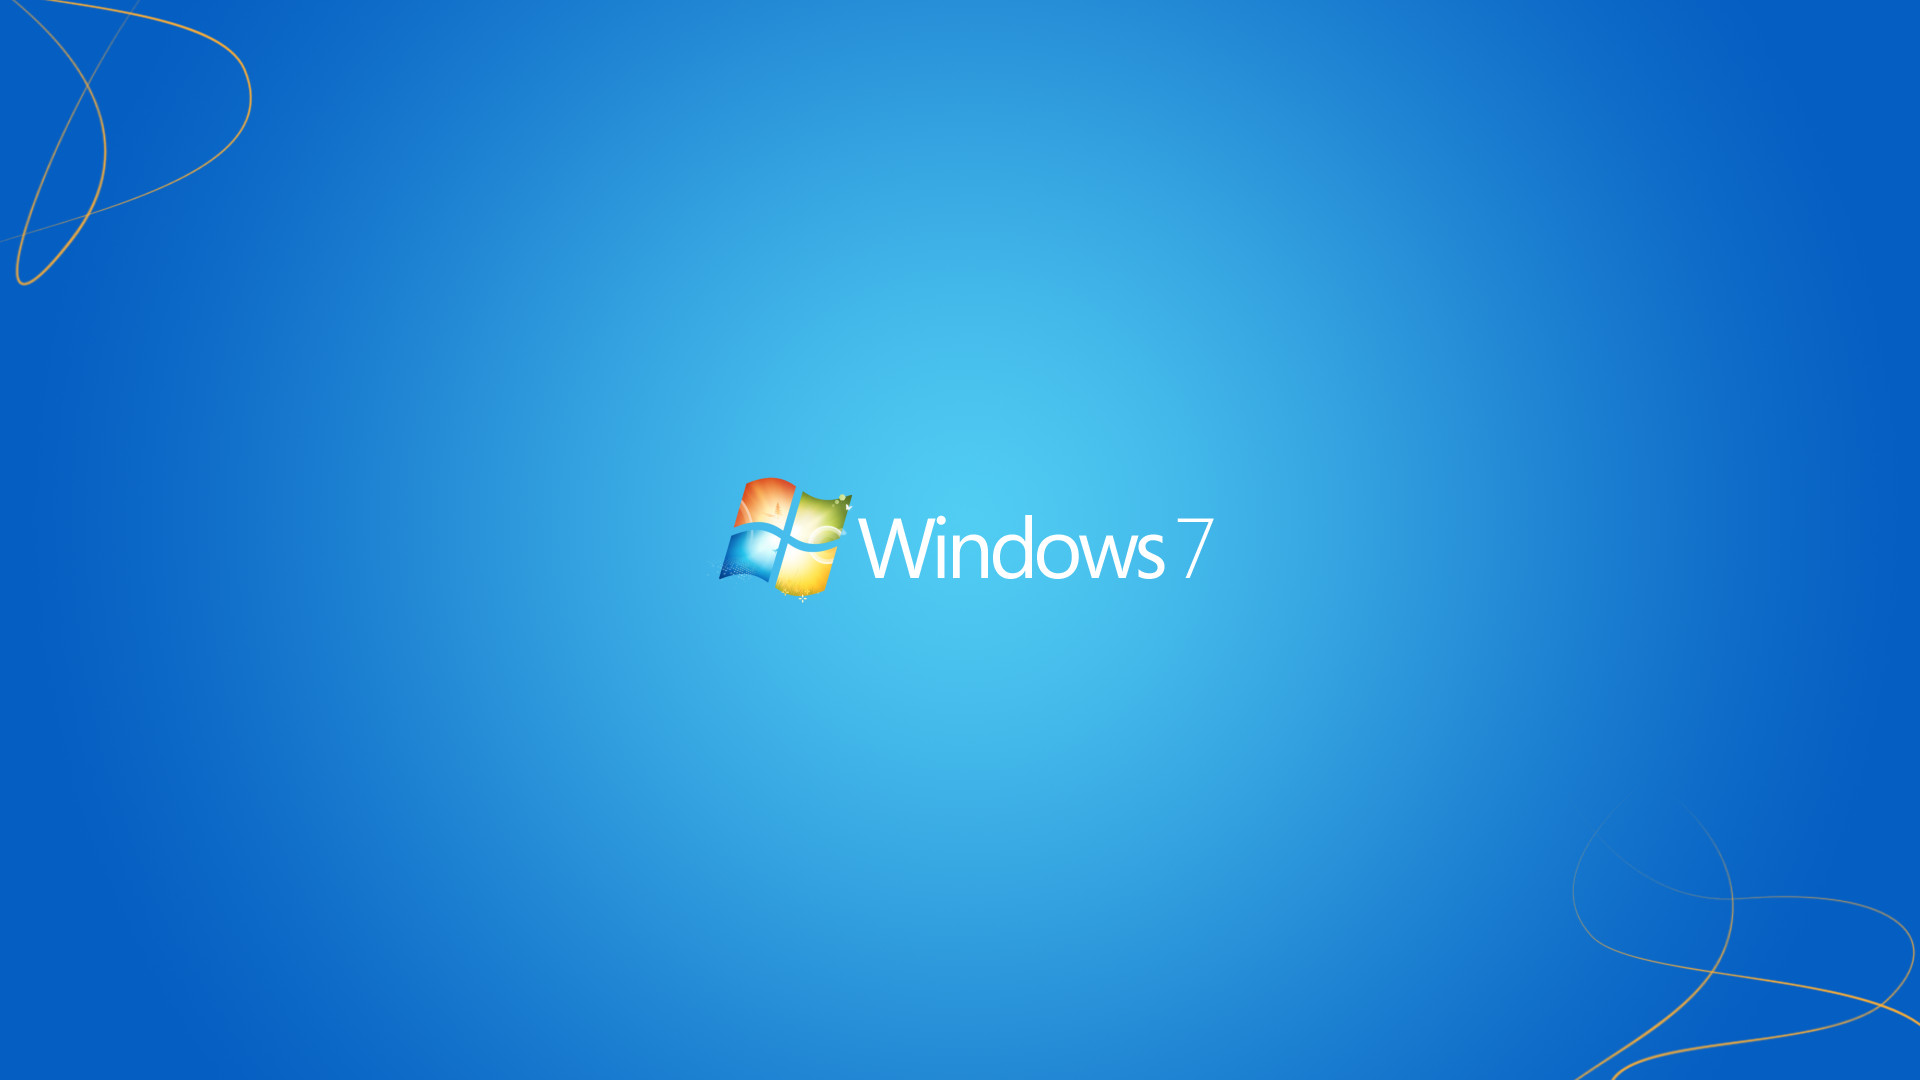 how to change wallpaper on windows 7 starter without download